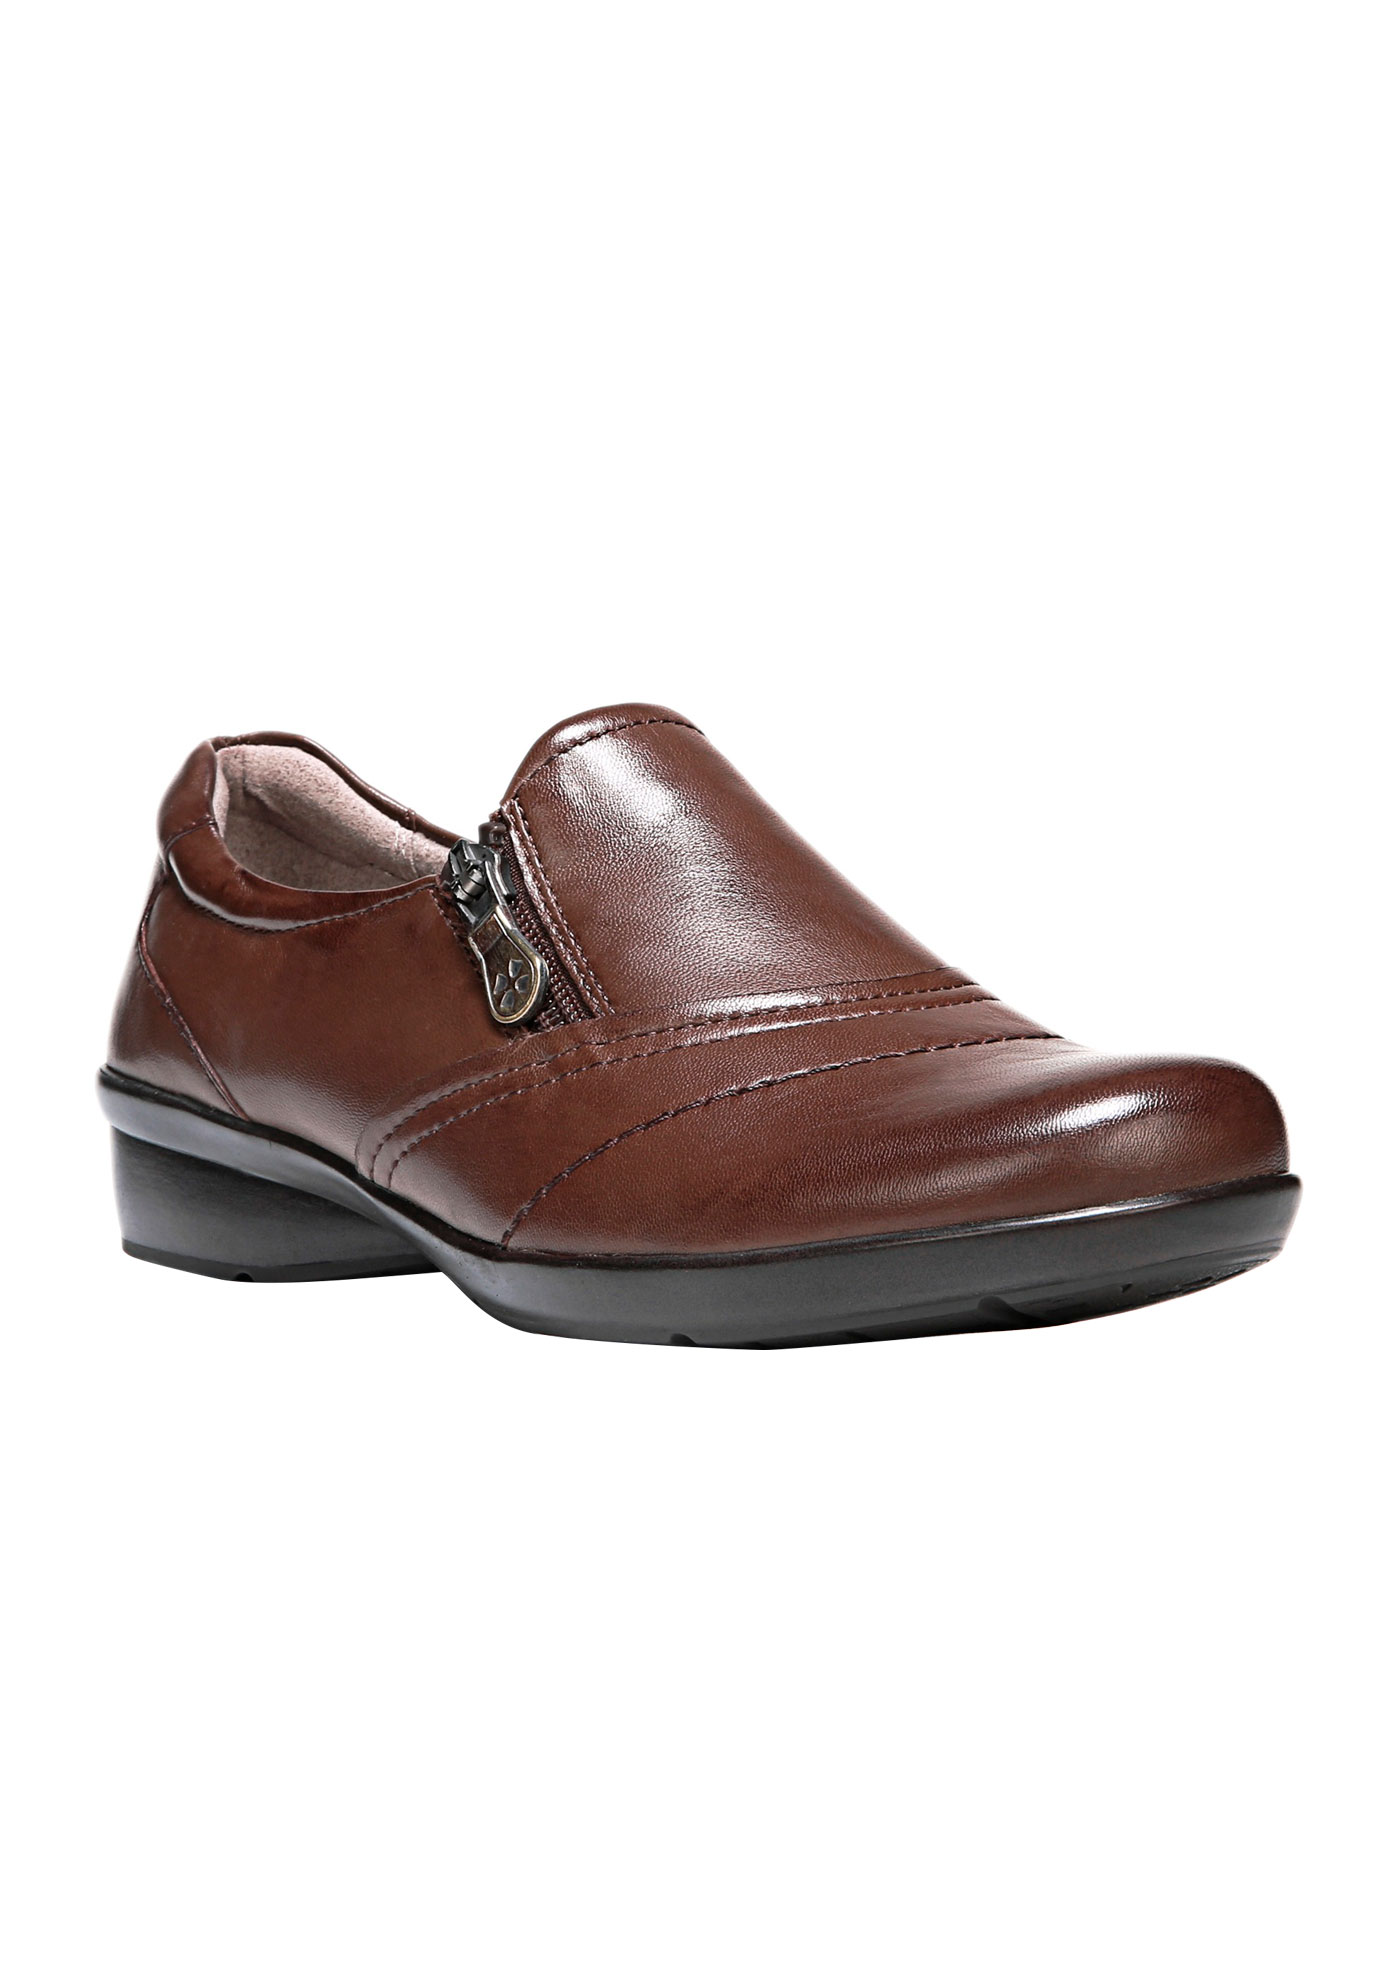 Clarissa Dress Shoes by Naturalizer®, COFFEE BEAN, hi-res